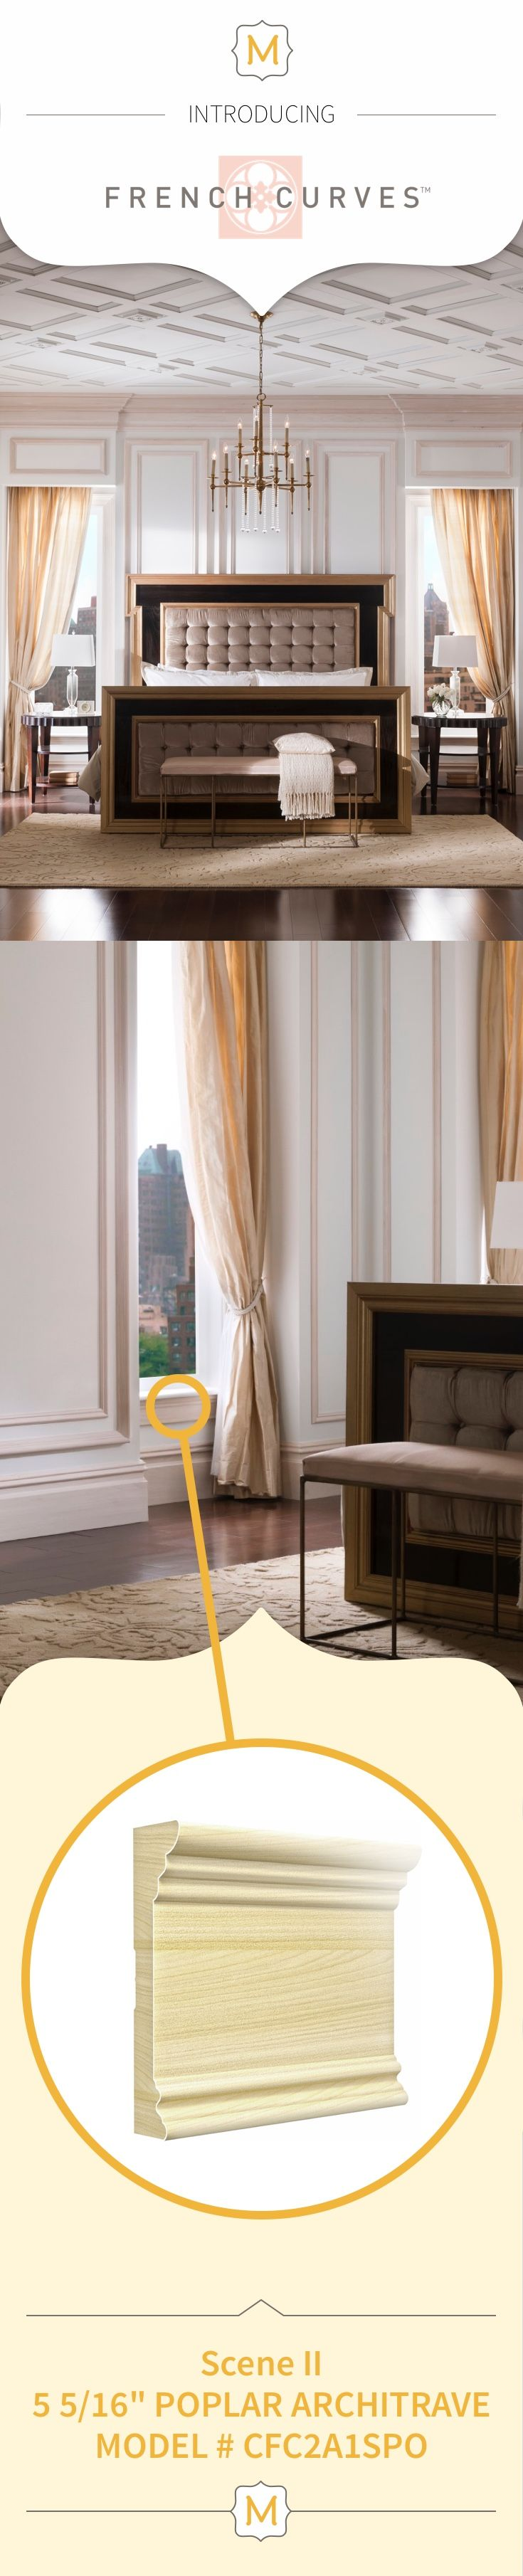 Create an elegant window sill with Metrie's French Curves Collection moulding elements.